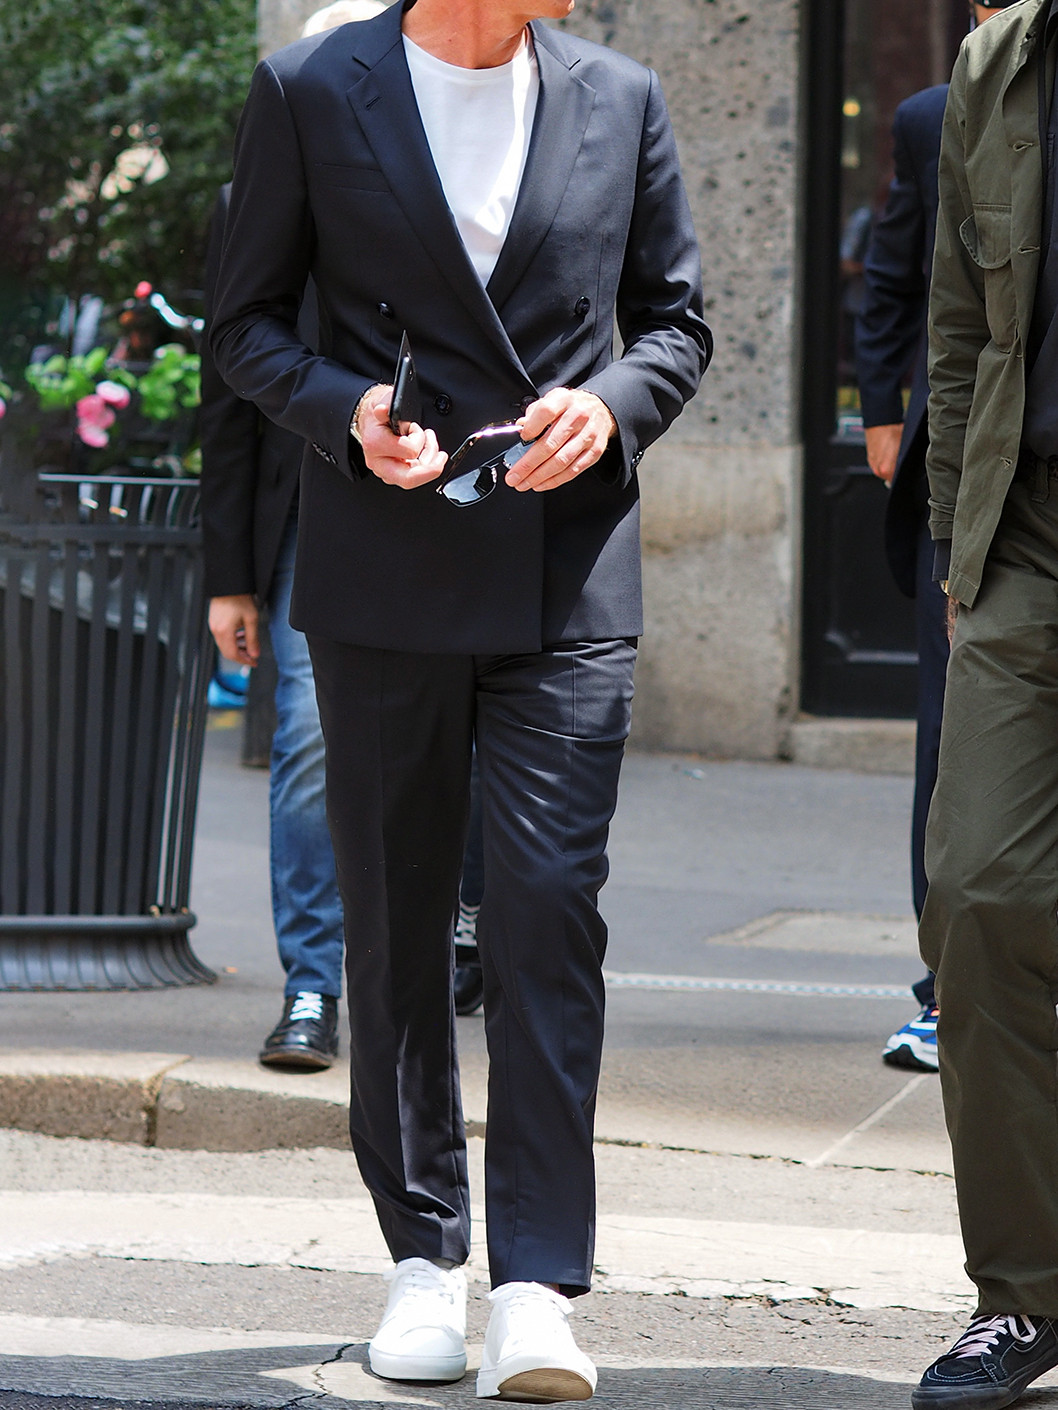 Men's outfit idea for 2021 with navy double-breasted blazer, white crew neck t-shirt, navy formal trousers, white trainers. Suitable for spring, summer and autumn.